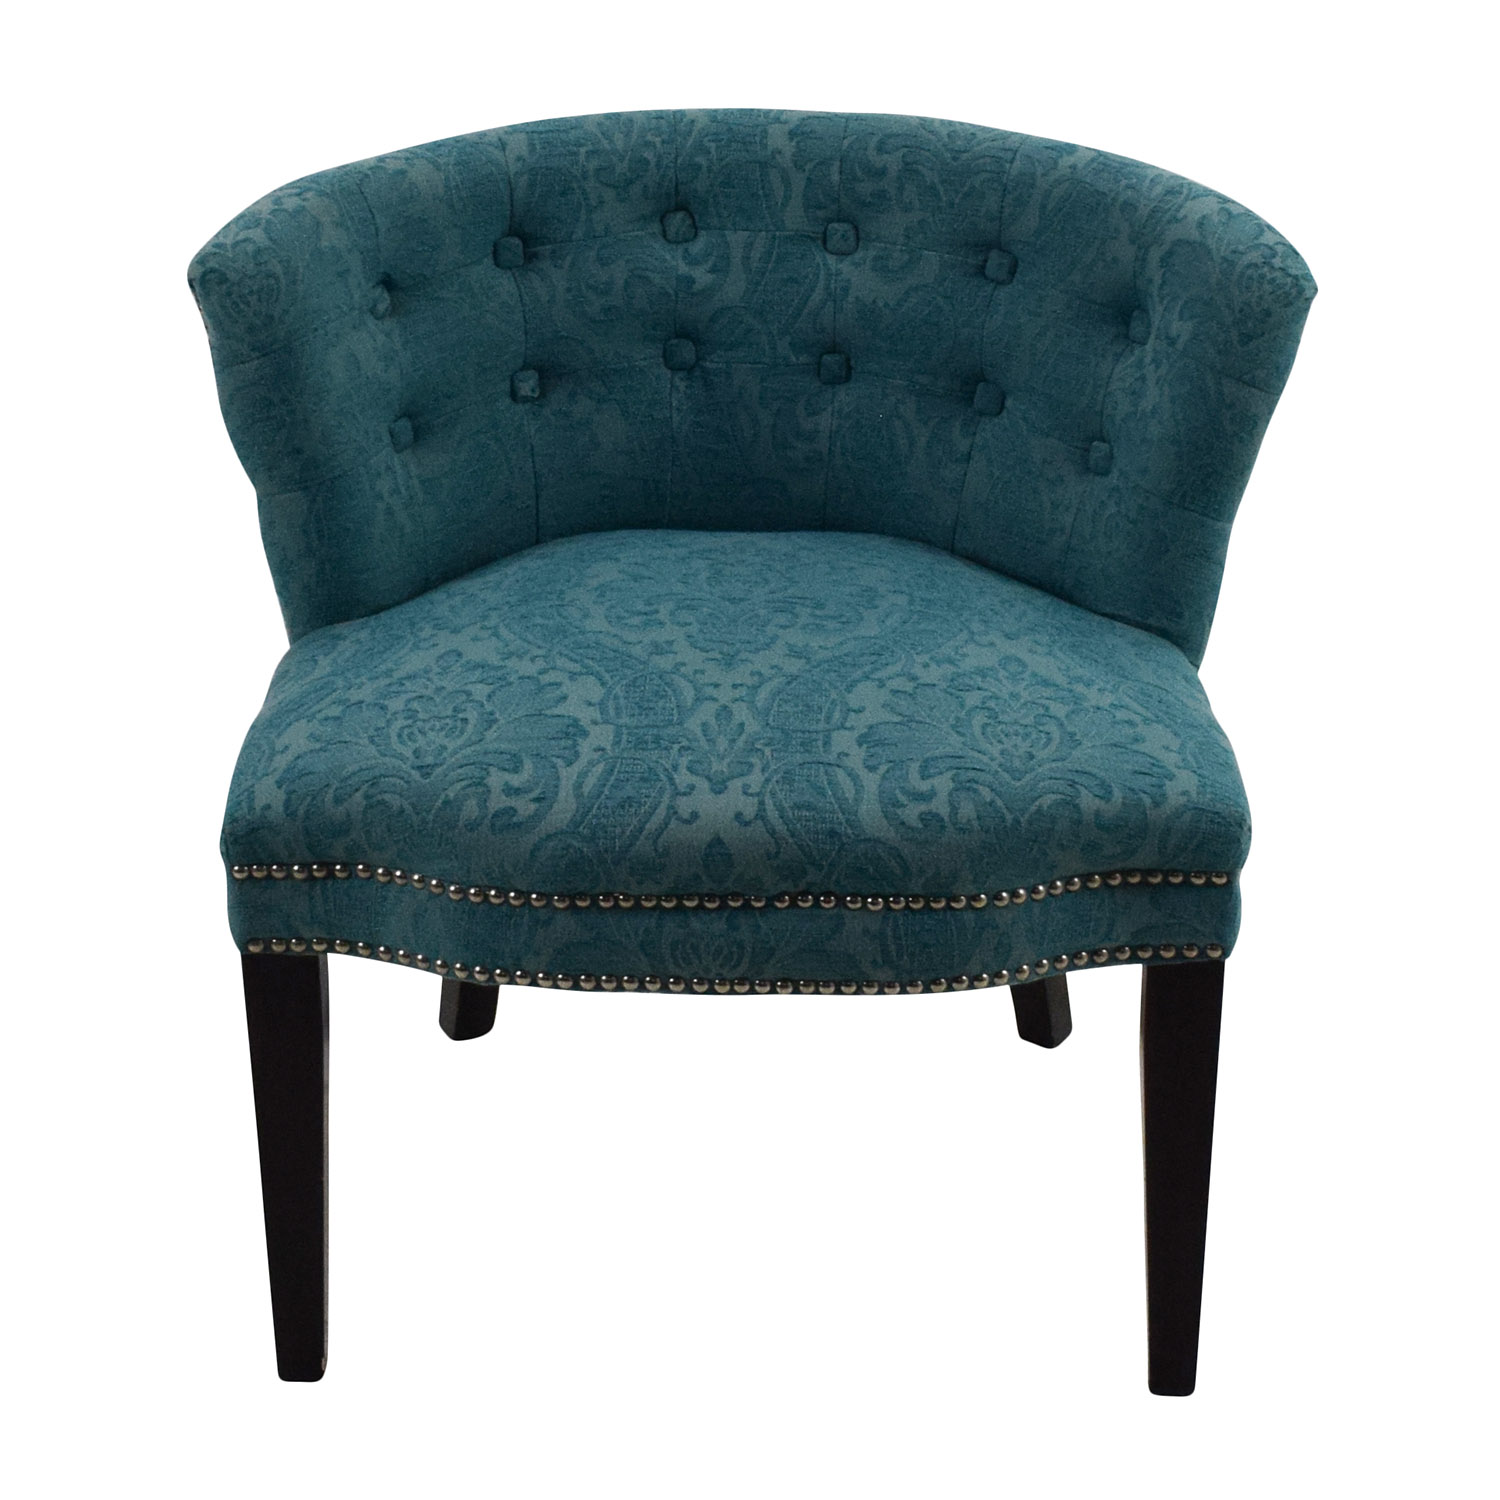 Cynthia Rowley Home Decor Collection: HomeGoods Cynthia Rowley Shabby Chic Chair / Chairs